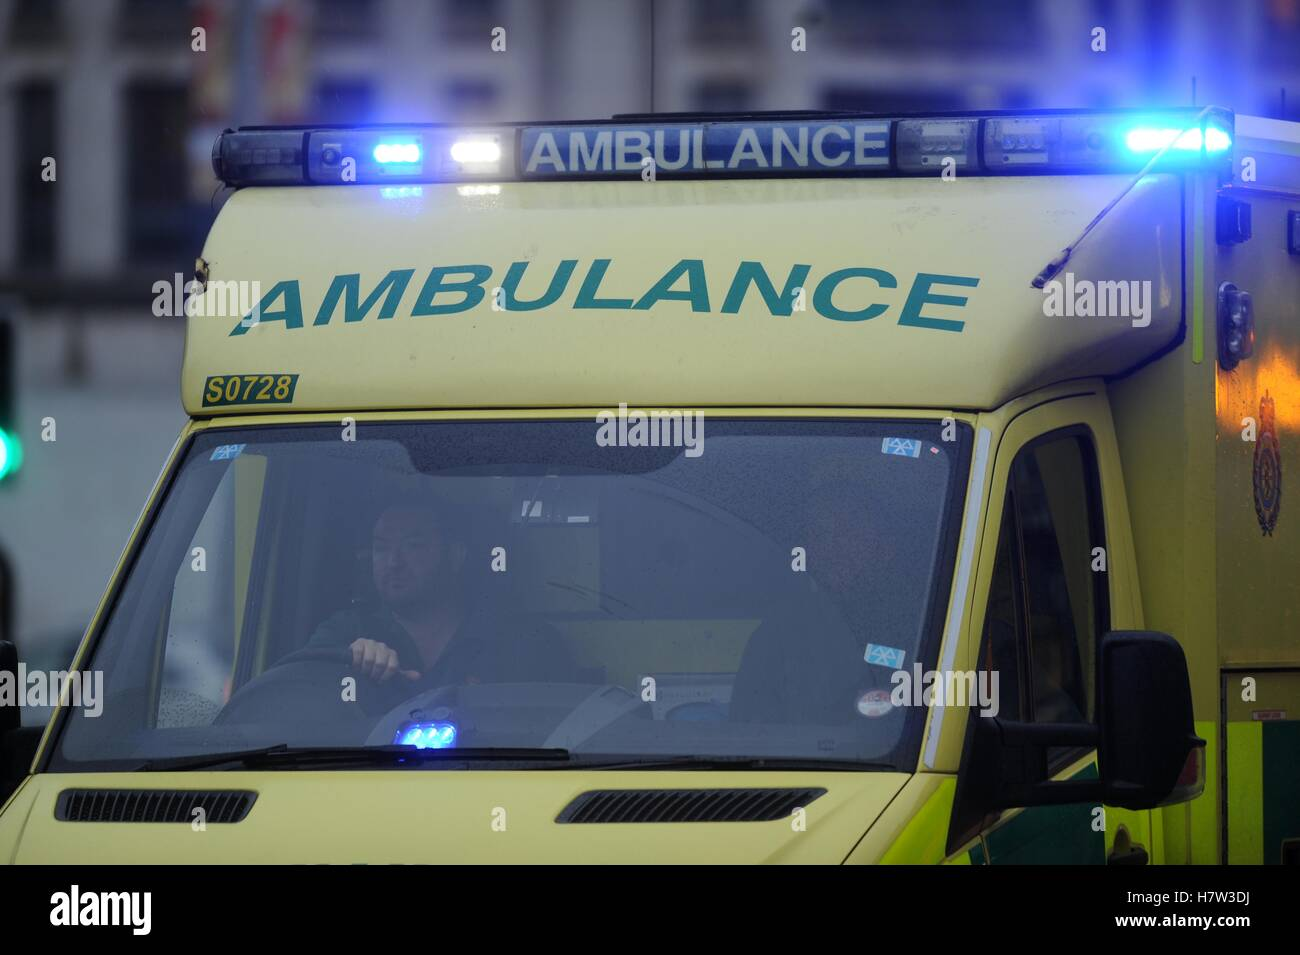 An ambulance with its flashing blue lights on during an emergency. - Stock Image